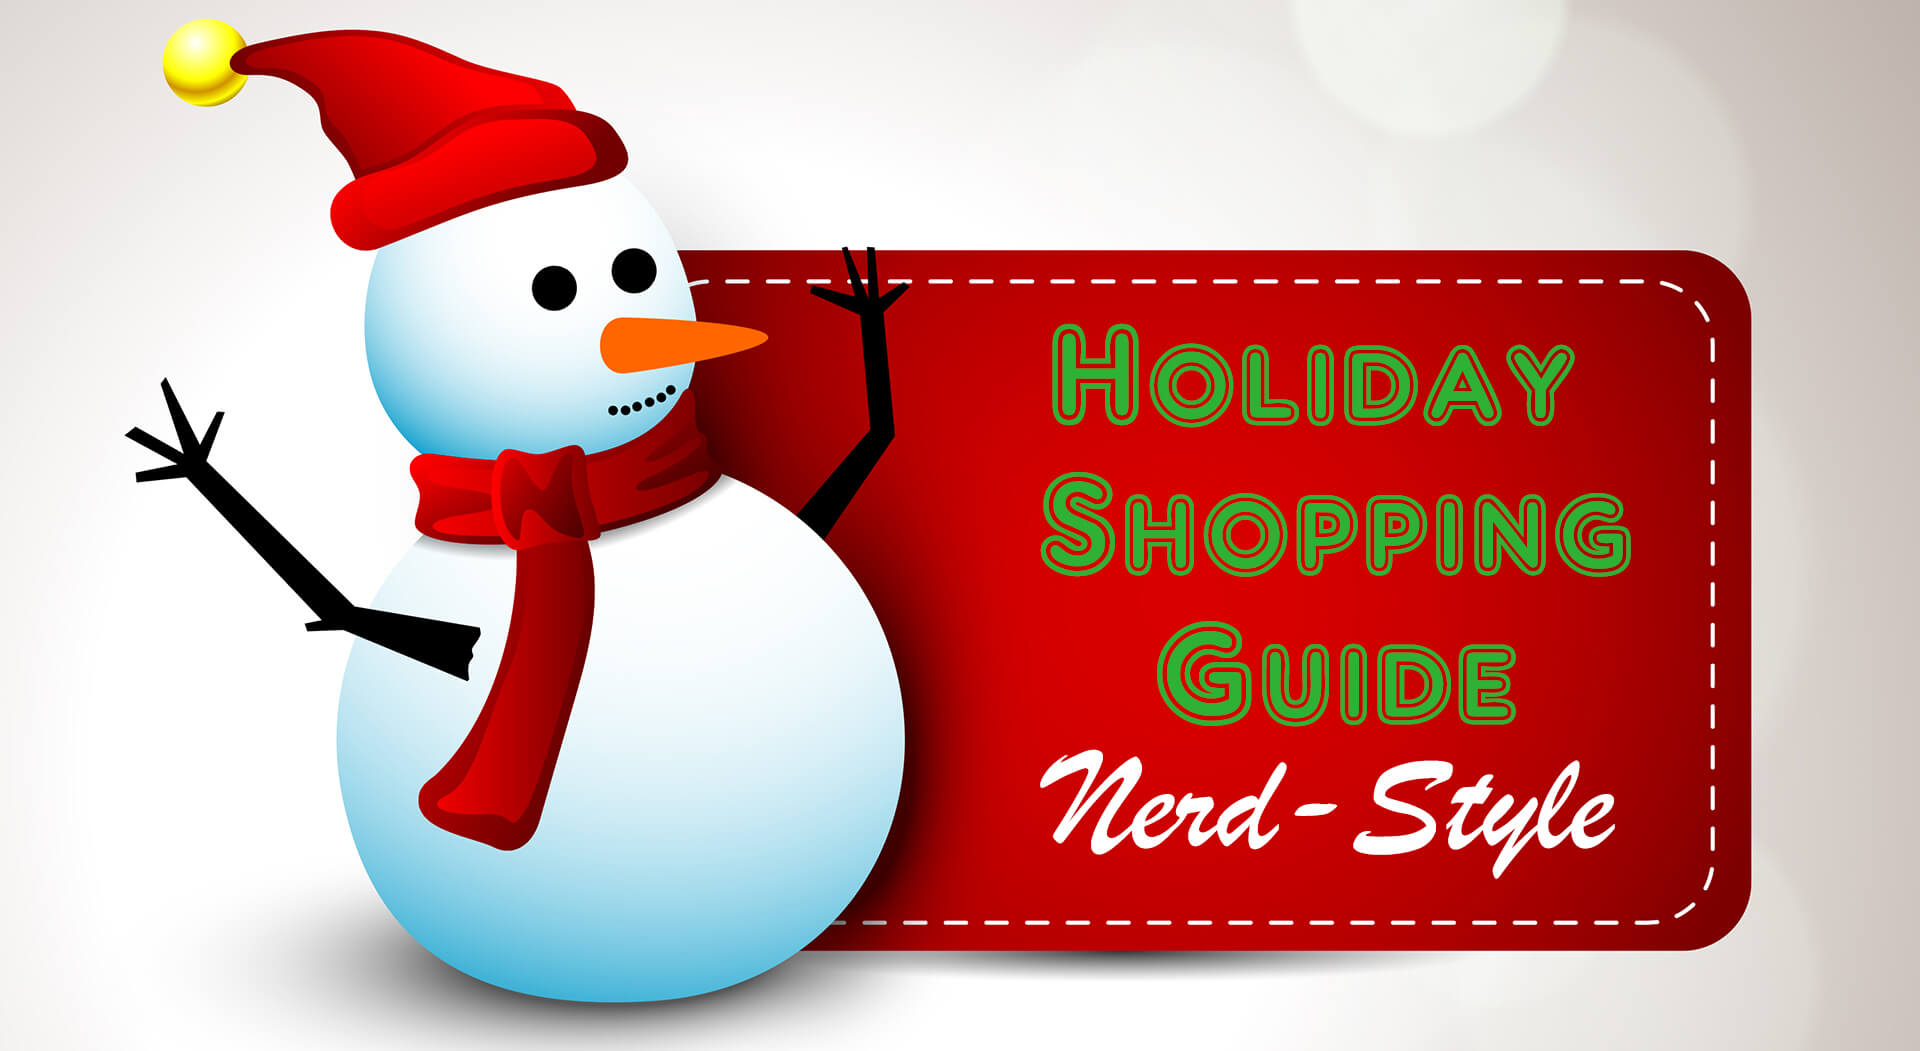 The Nerd Stash Holiday Shopping Guide